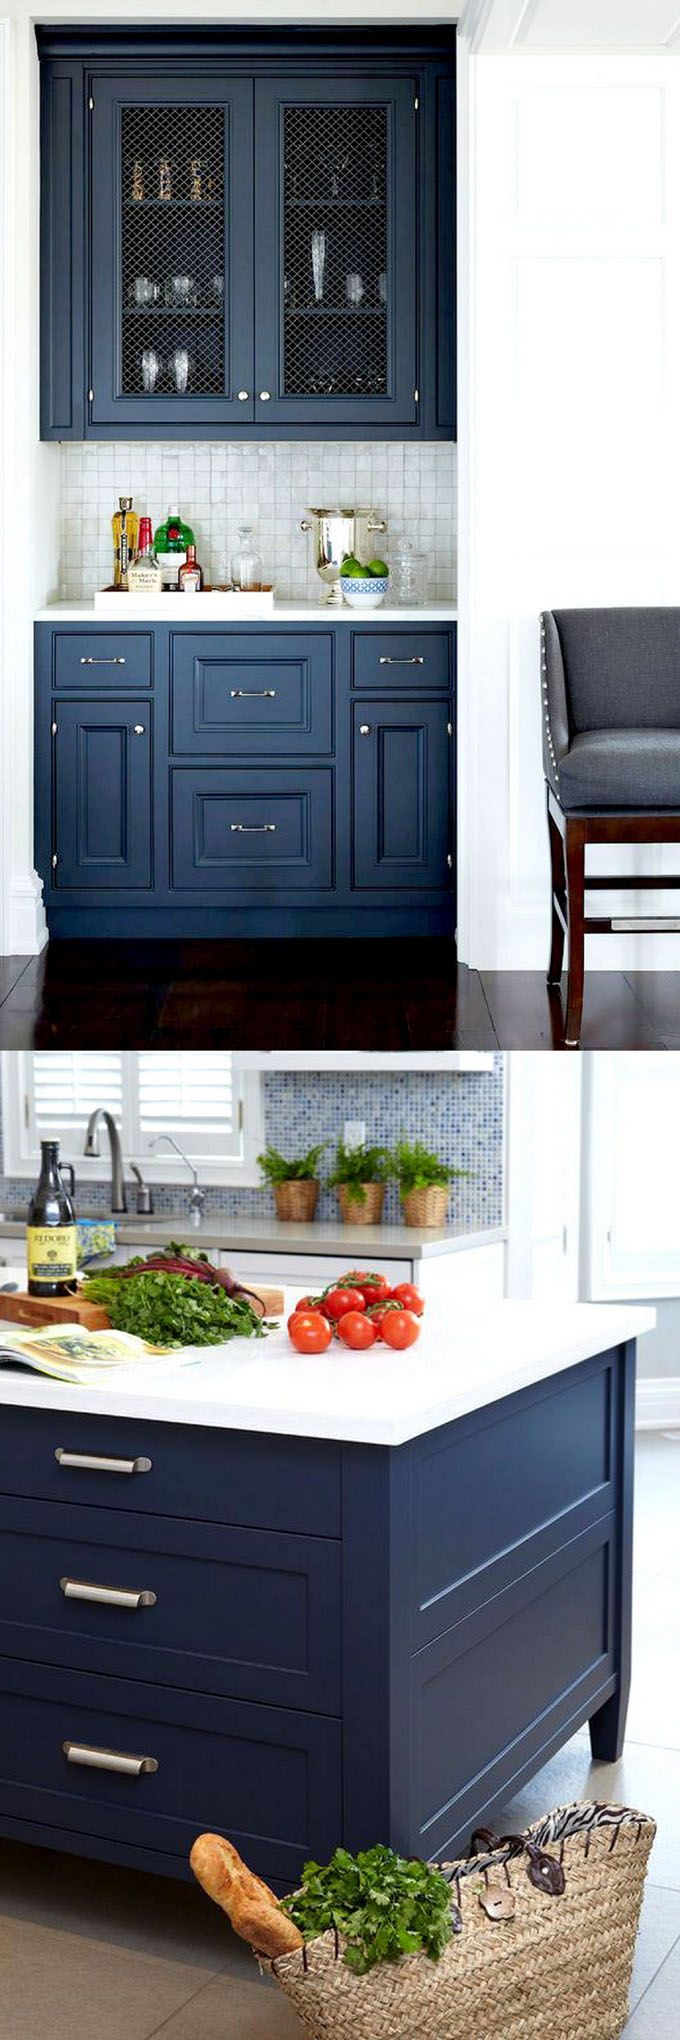 Kitchen Cabinets Colors Best 25 Kitchen Cabinet Colors Ideas On Pinterest  Kitchen